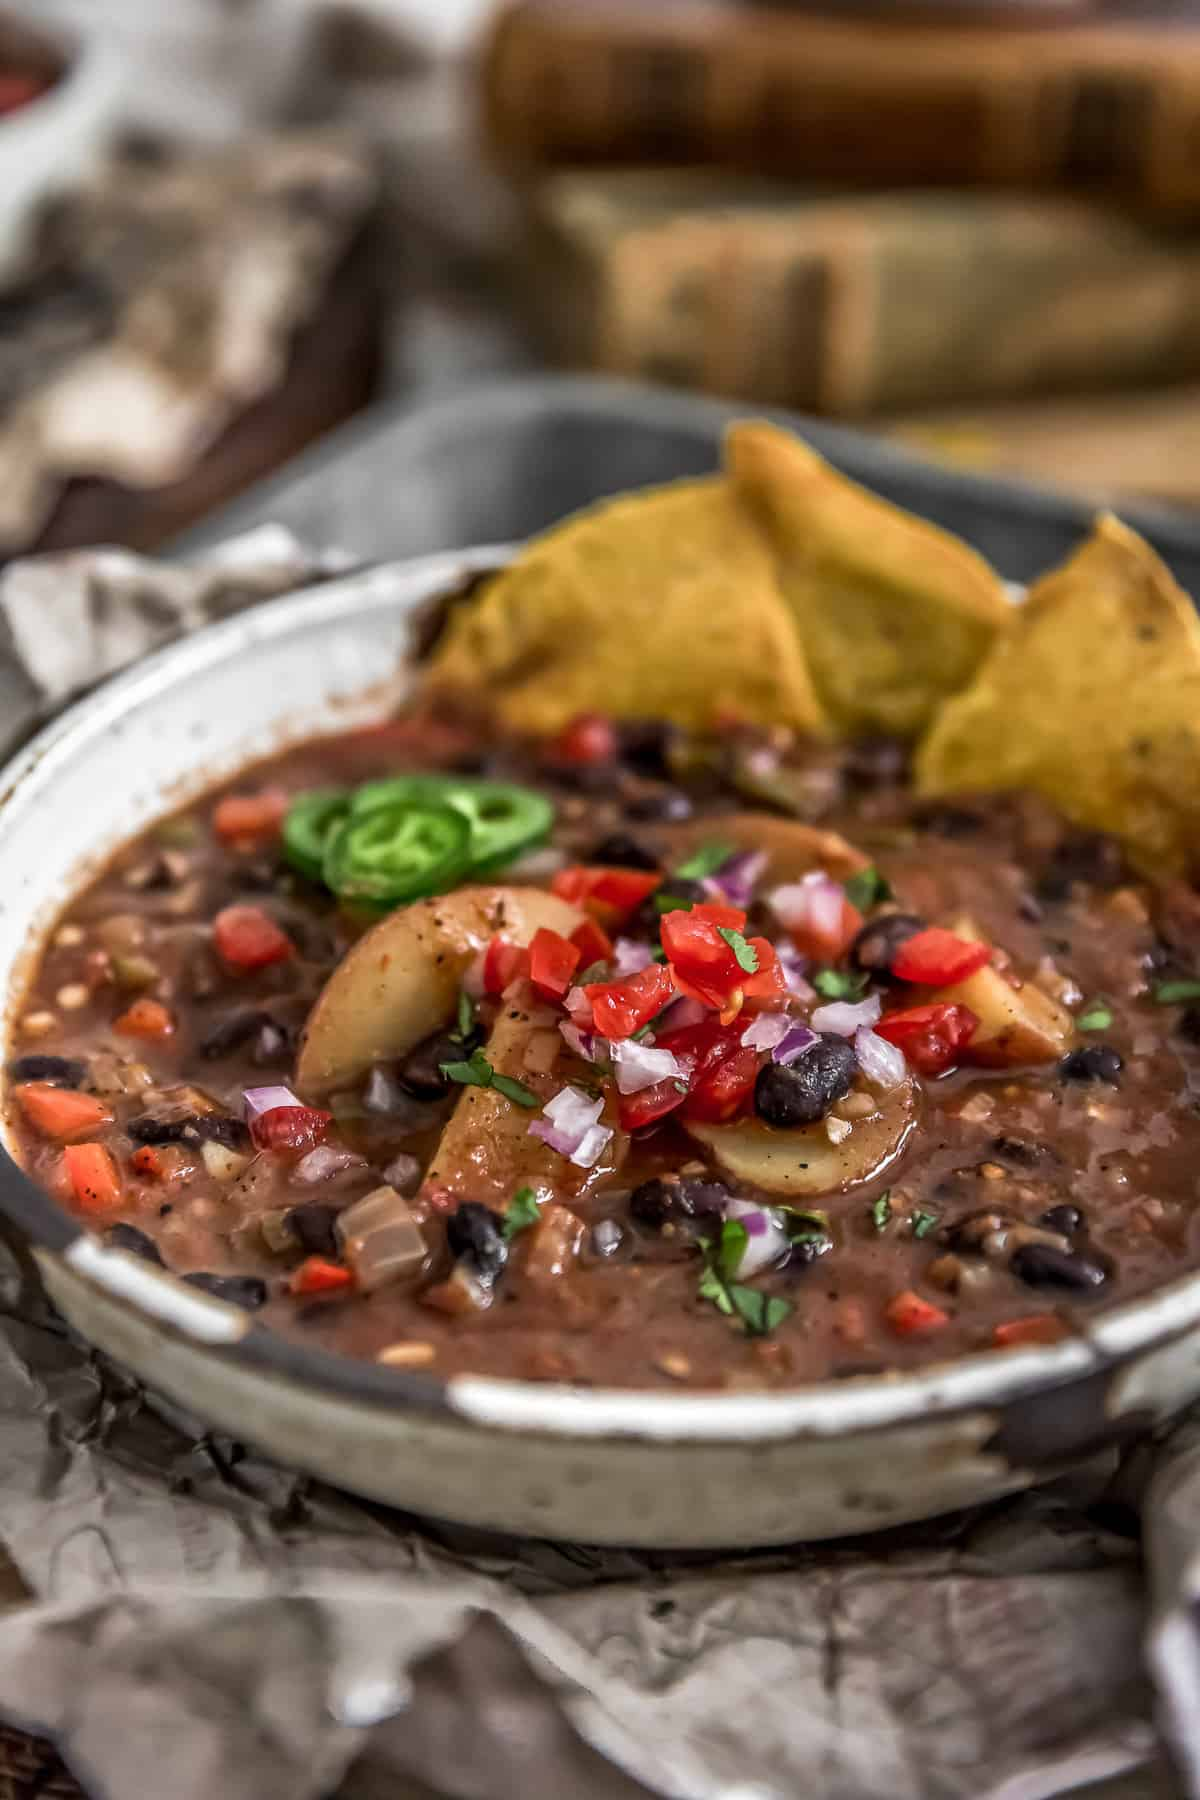 Spicy Black Bean Potato Stew with Tortillas